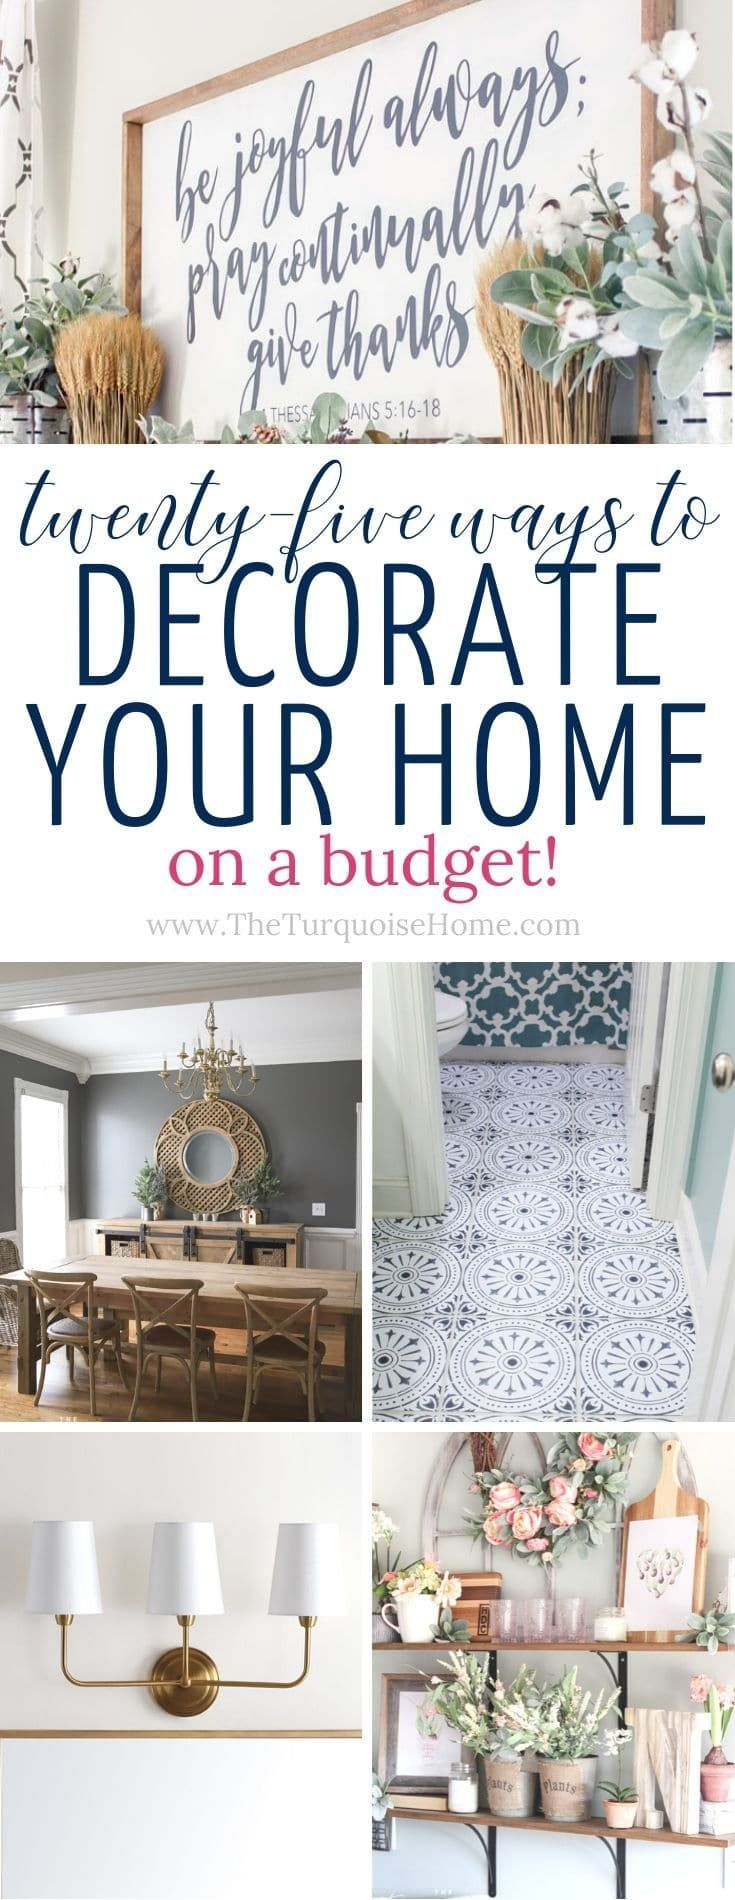 25 Ways To Decorate Your Home On A Budget Decorating A New Home Affordable Home Decor Decorating Your Home